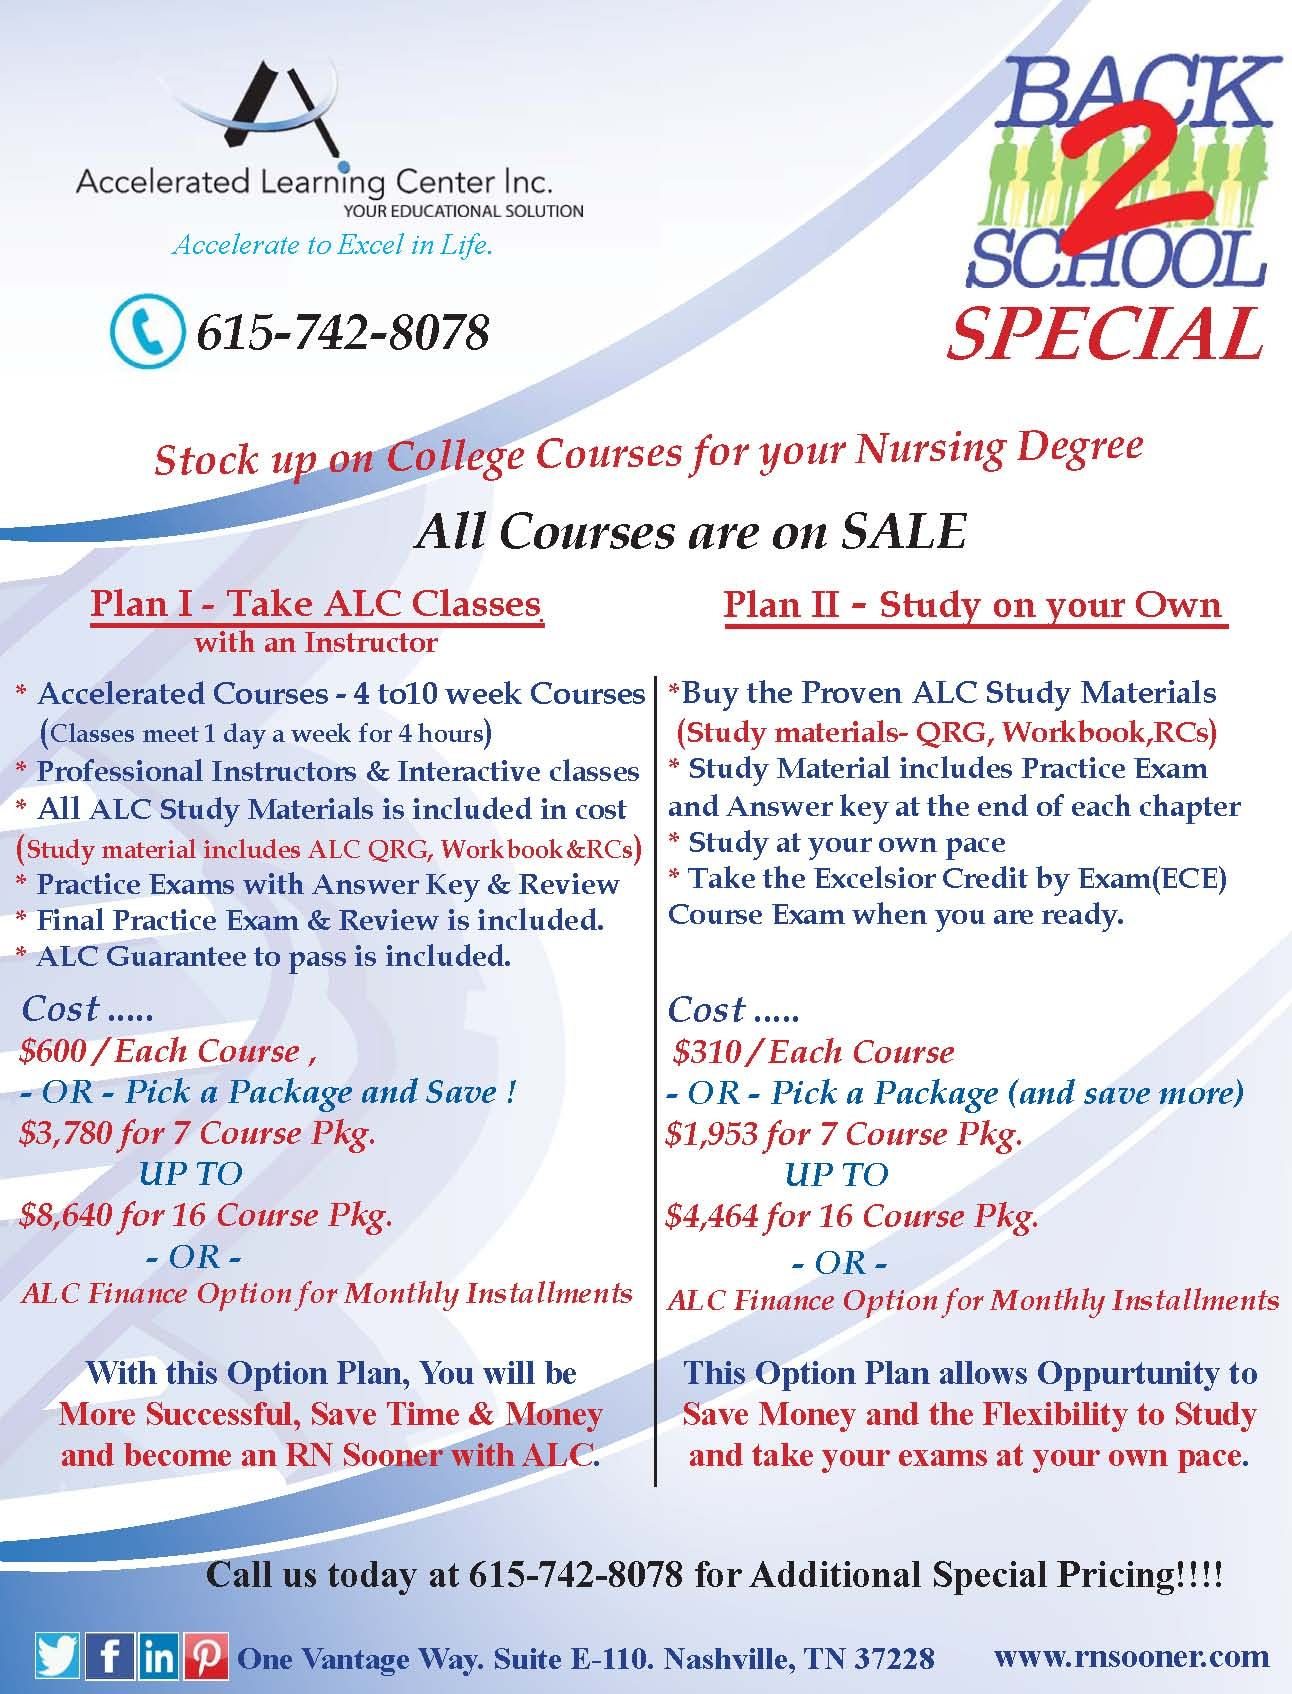 Pin by Accelerated Learning Center, I on New Promotion at